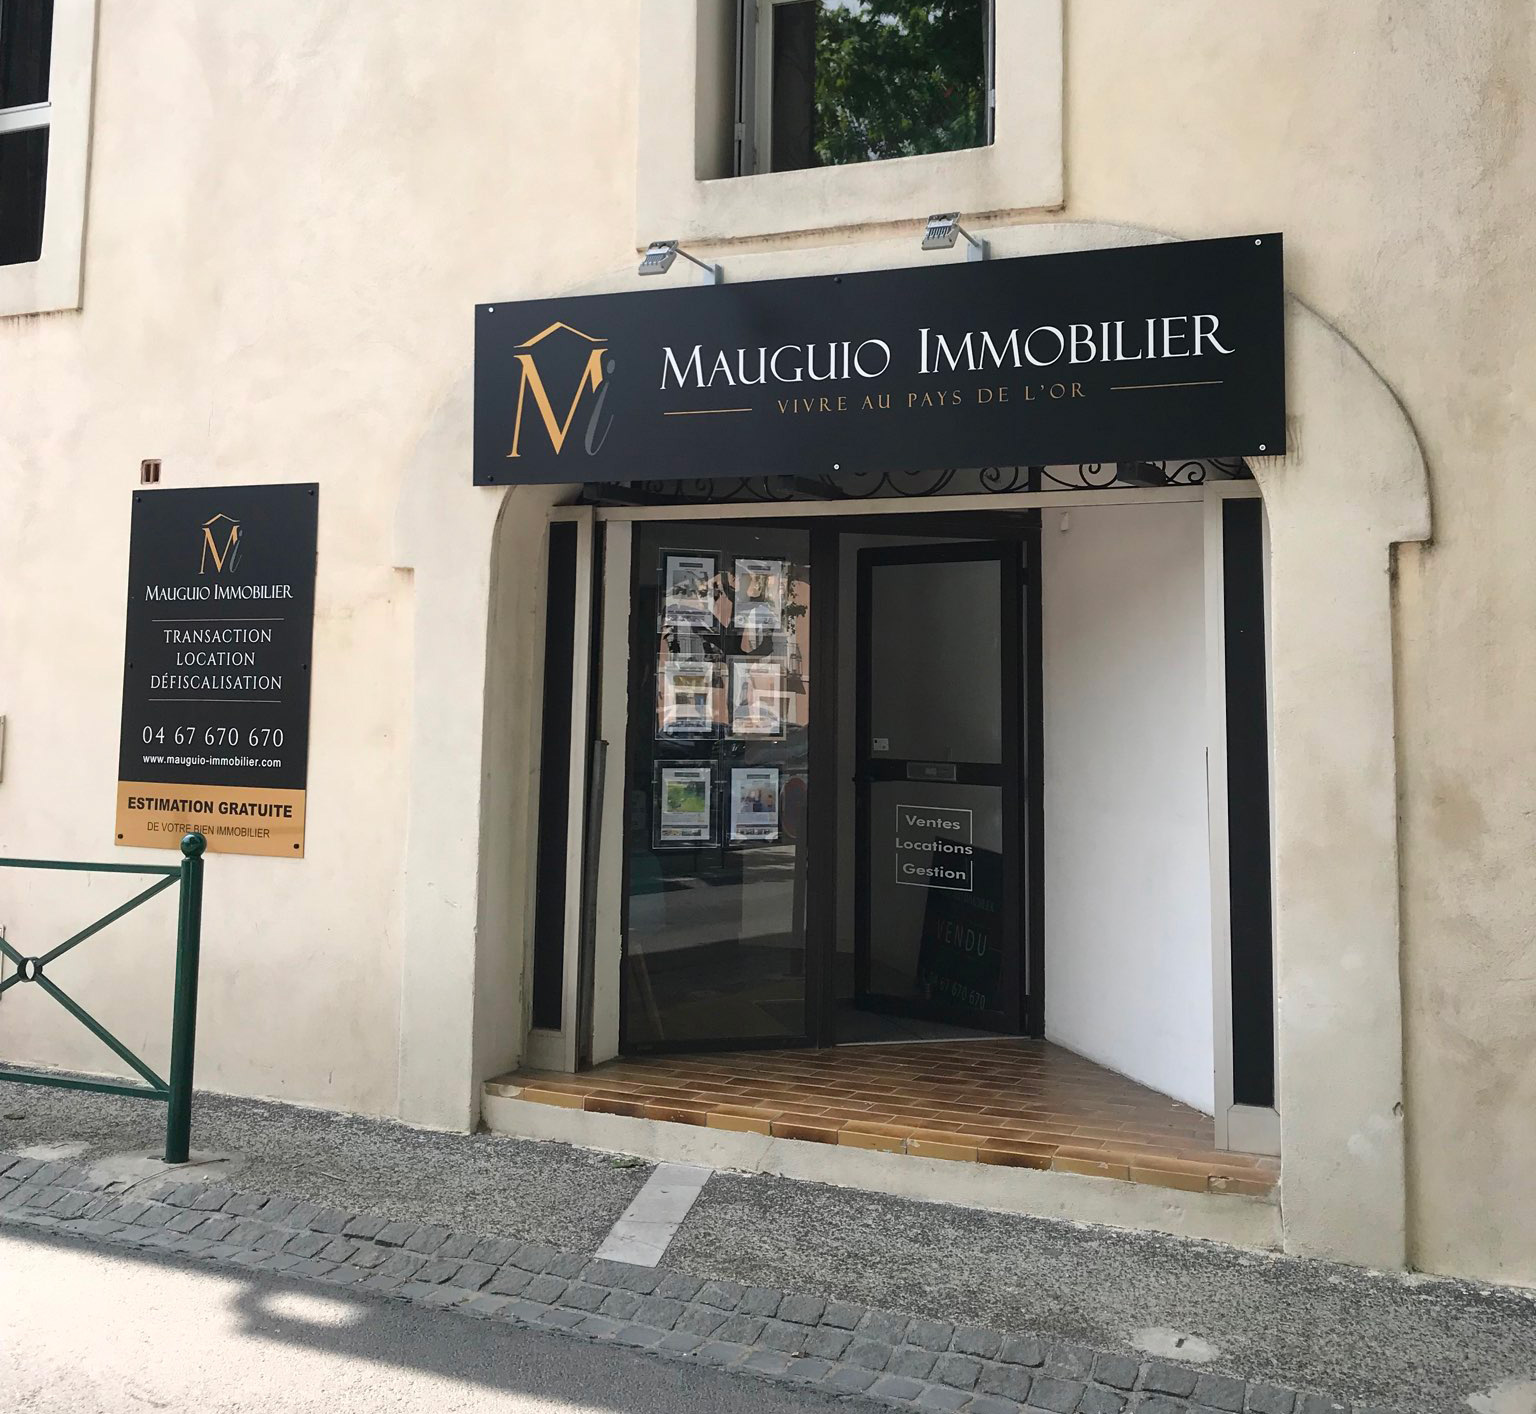 Mauguio Immobilier